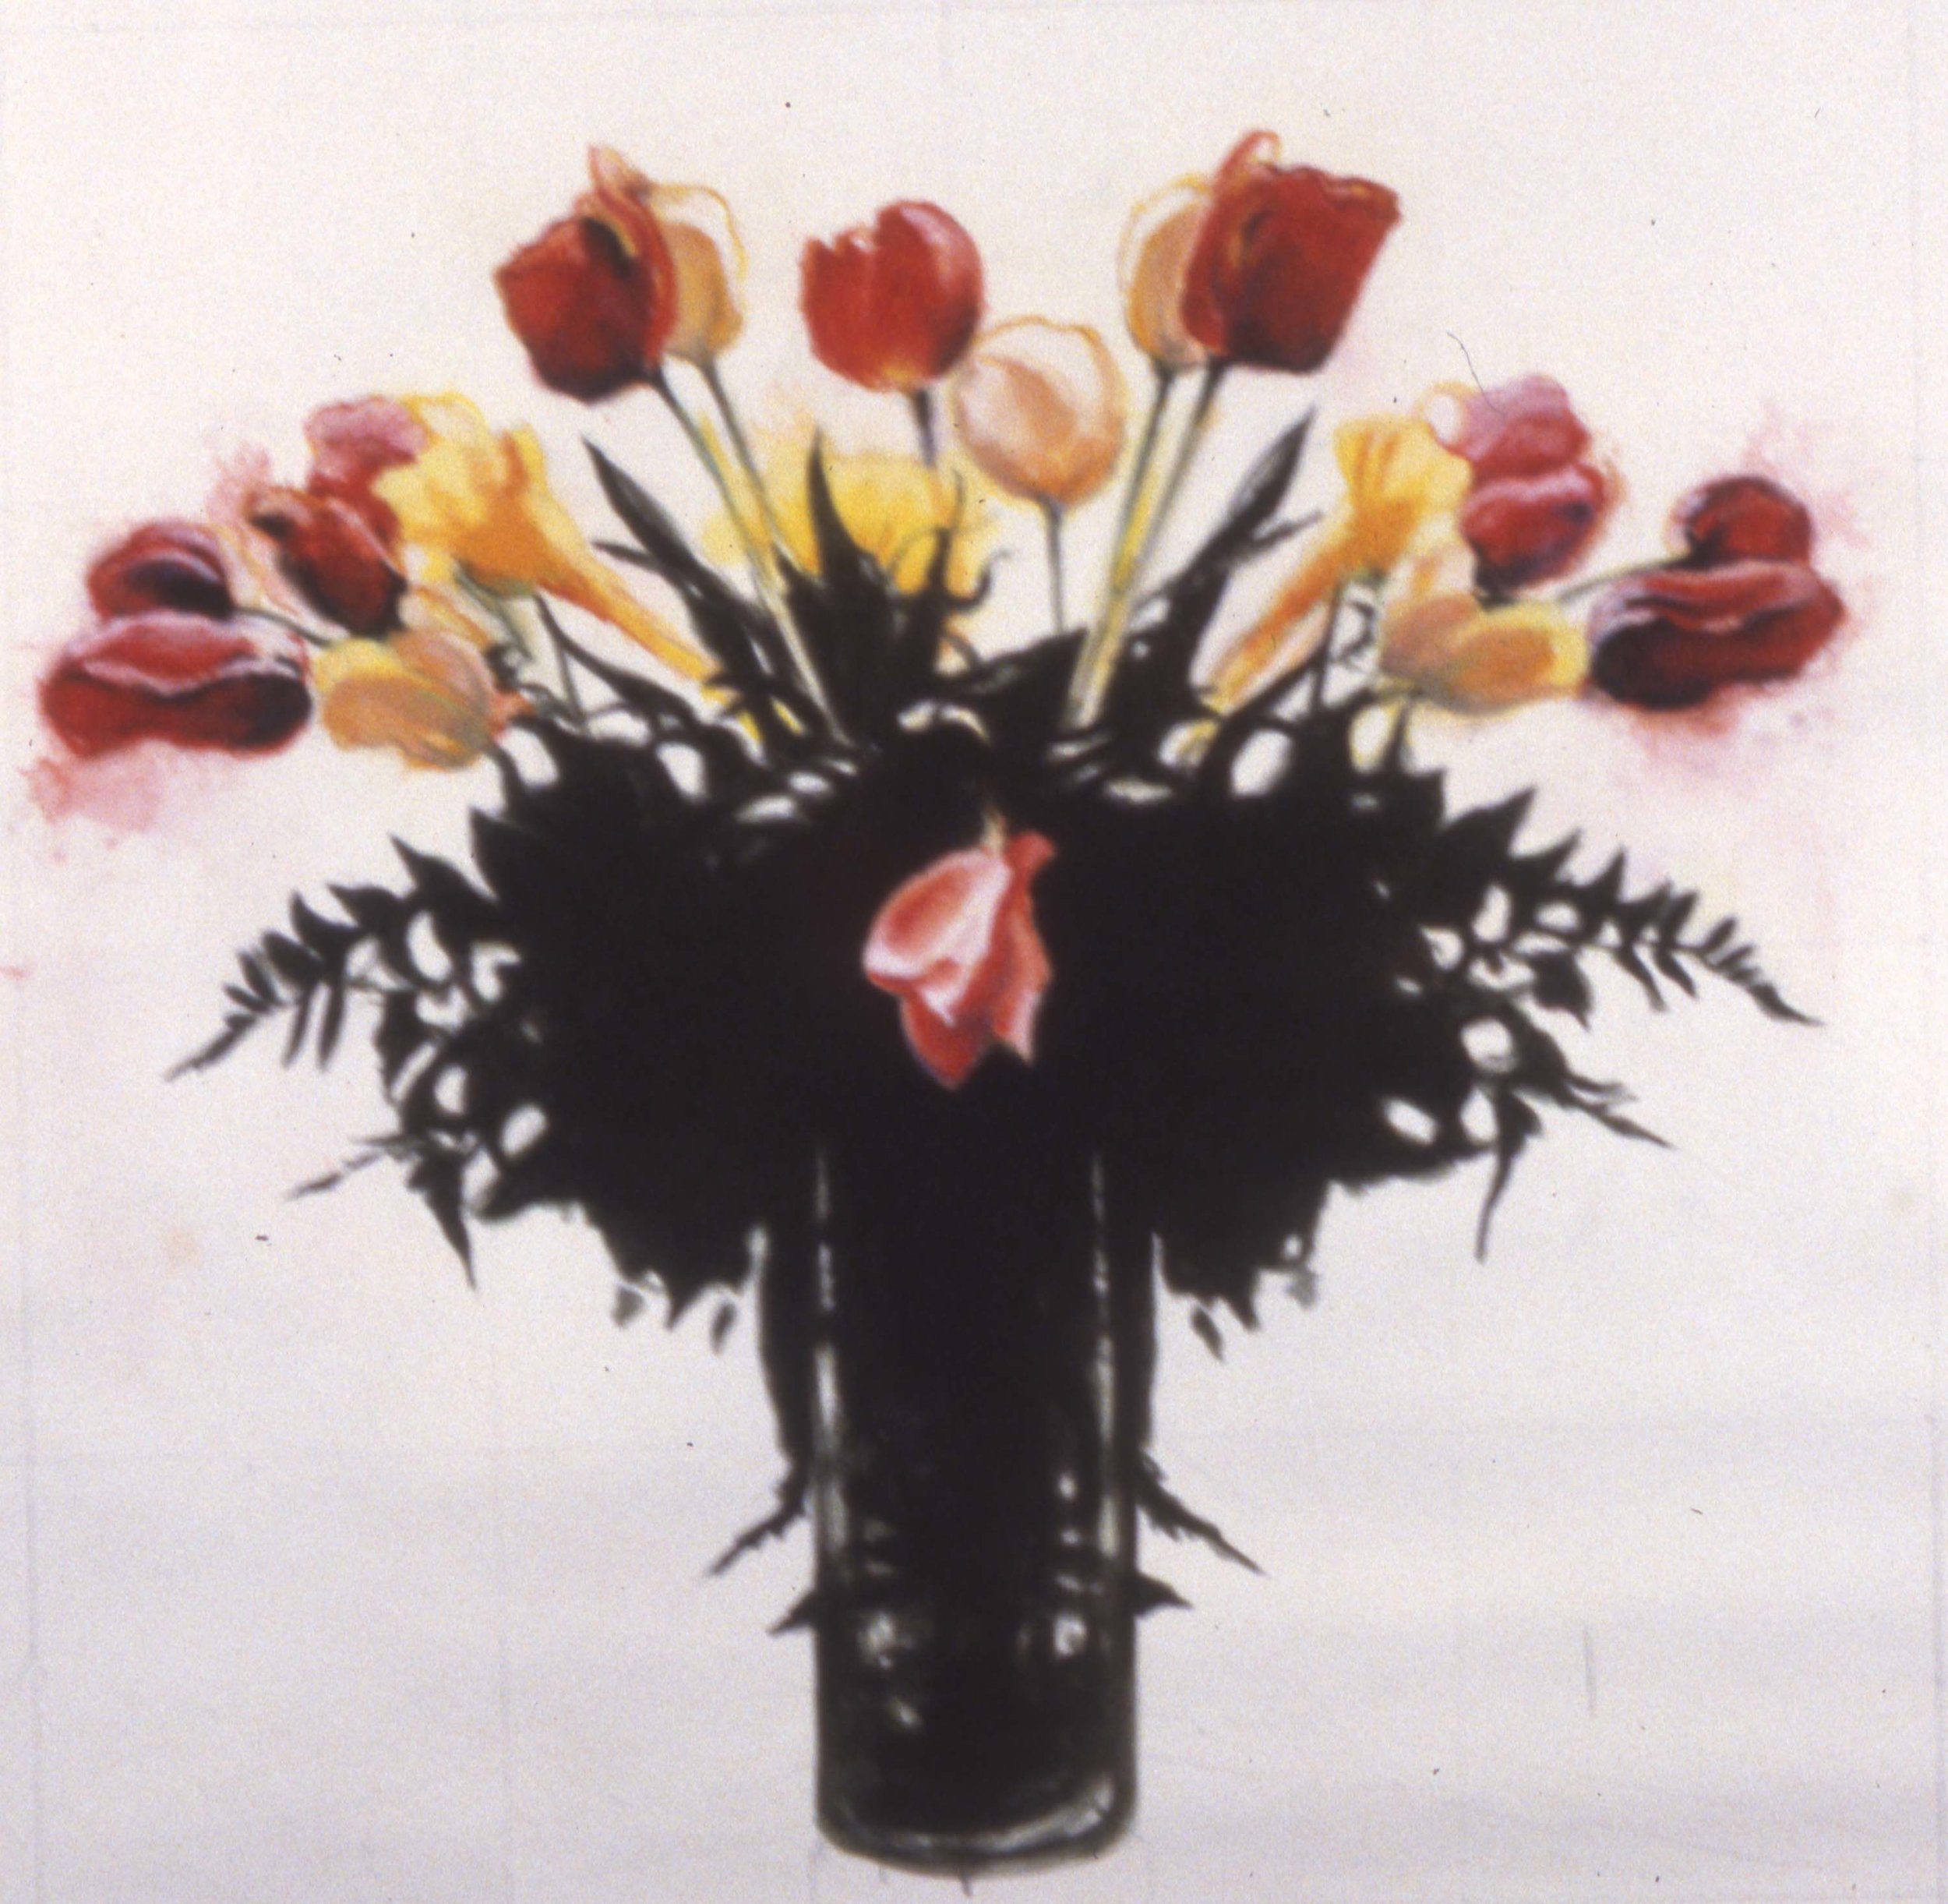 natural/History (Study for Vase), 1995